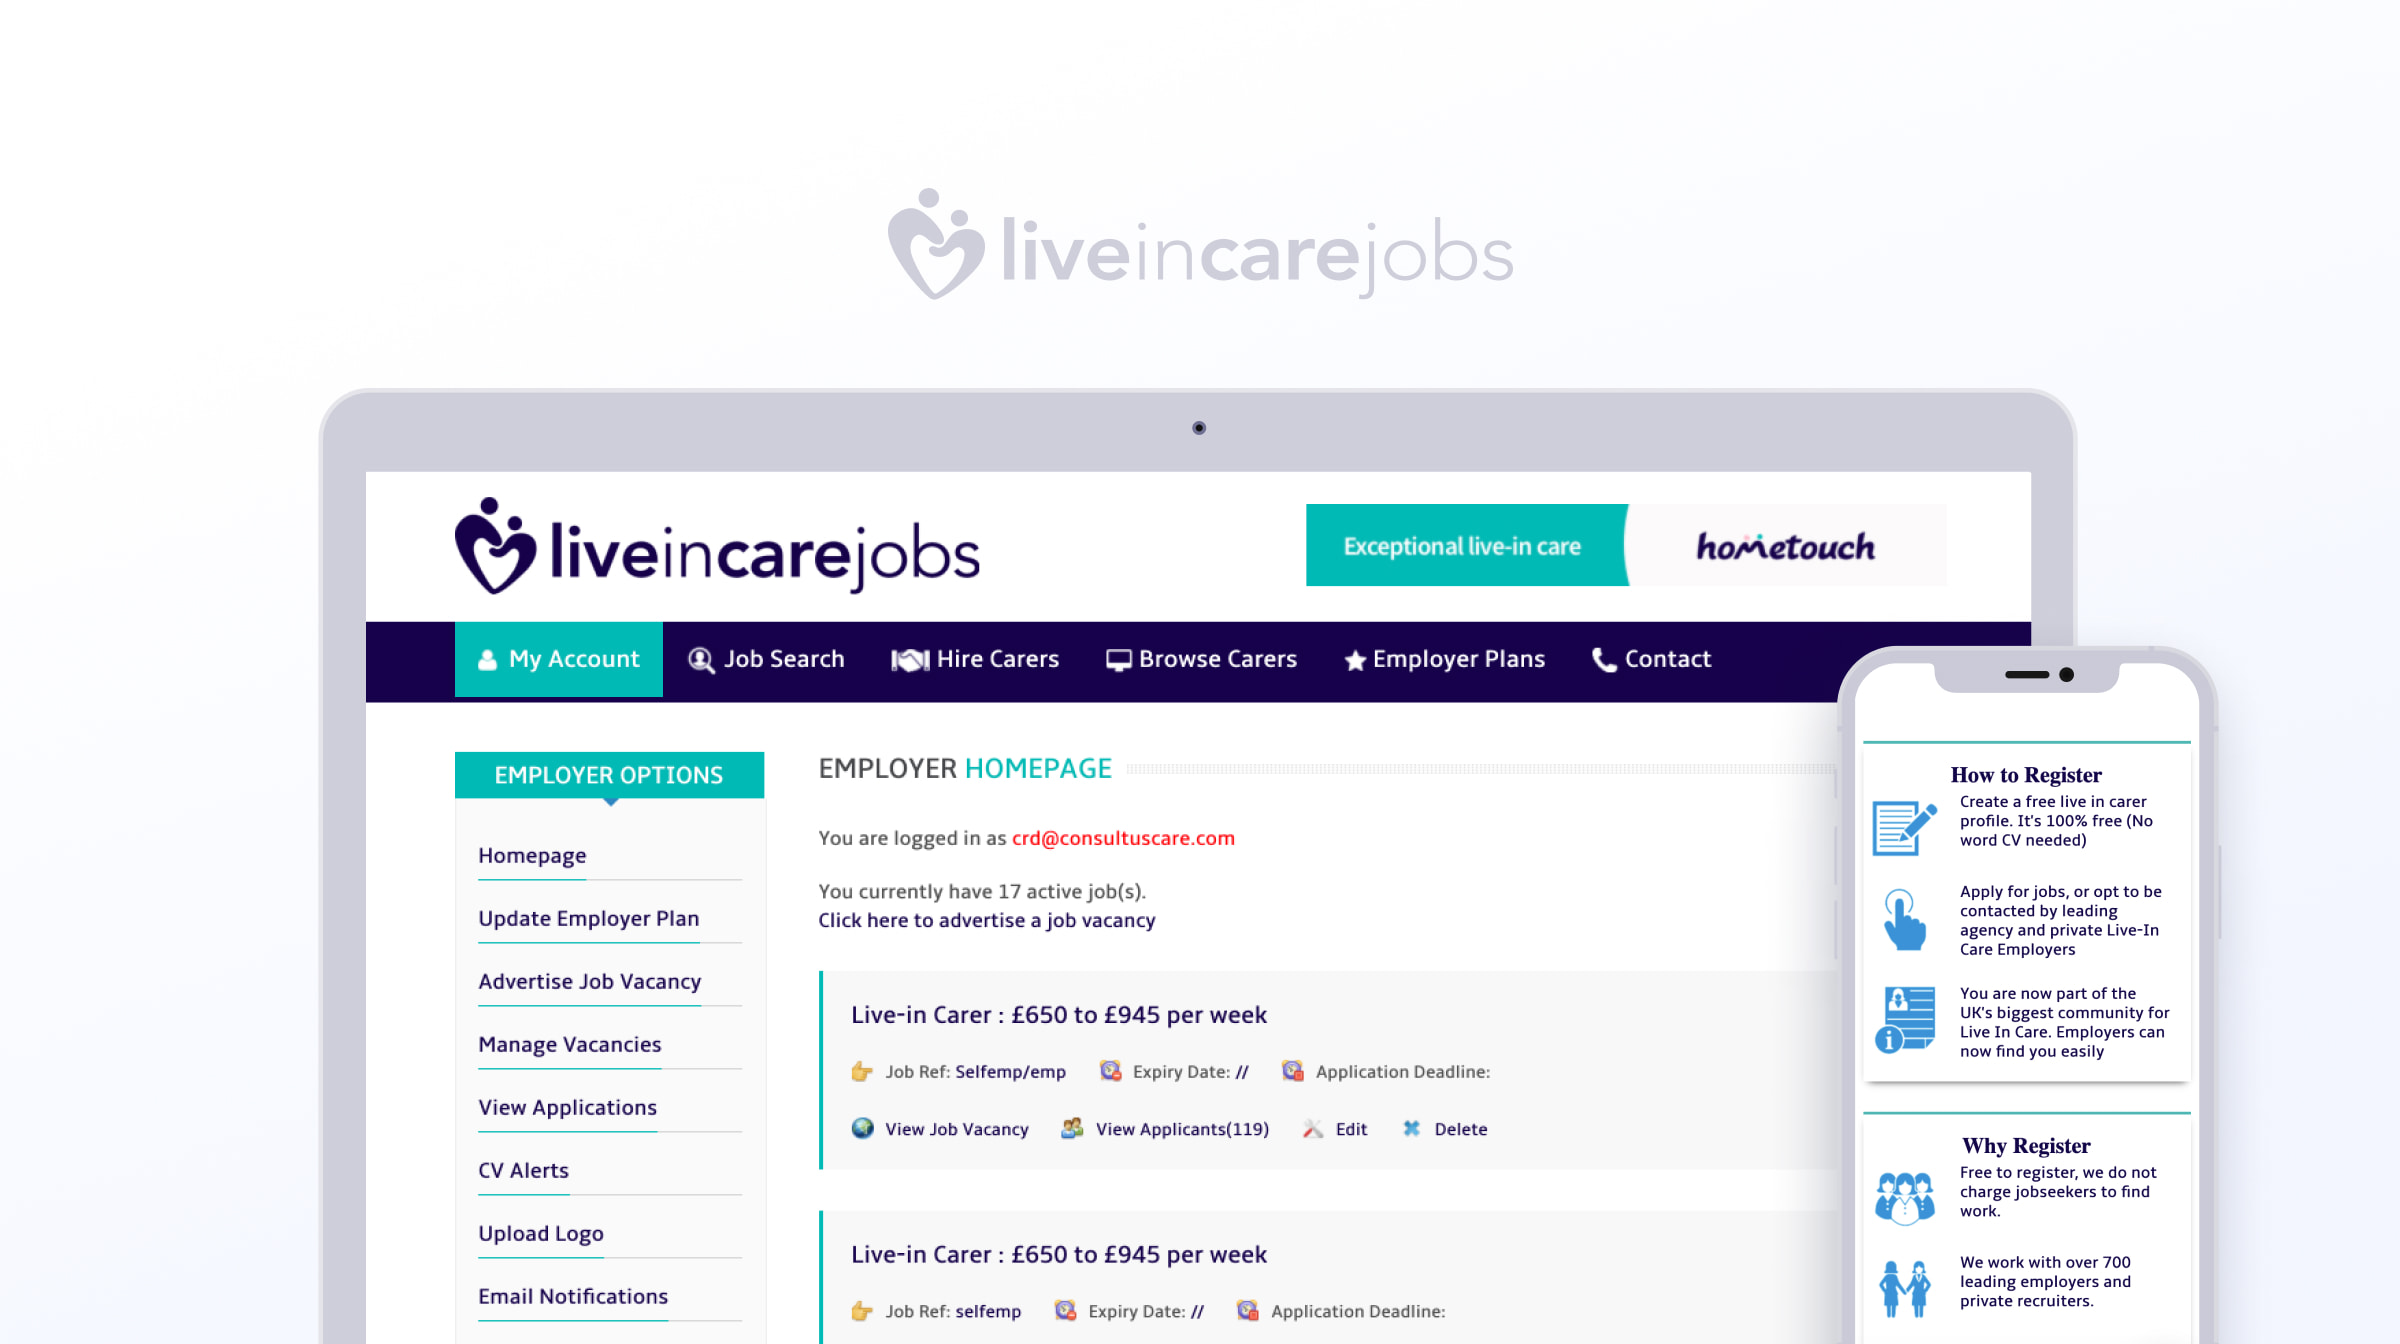 Live in Care jobs before redesigning